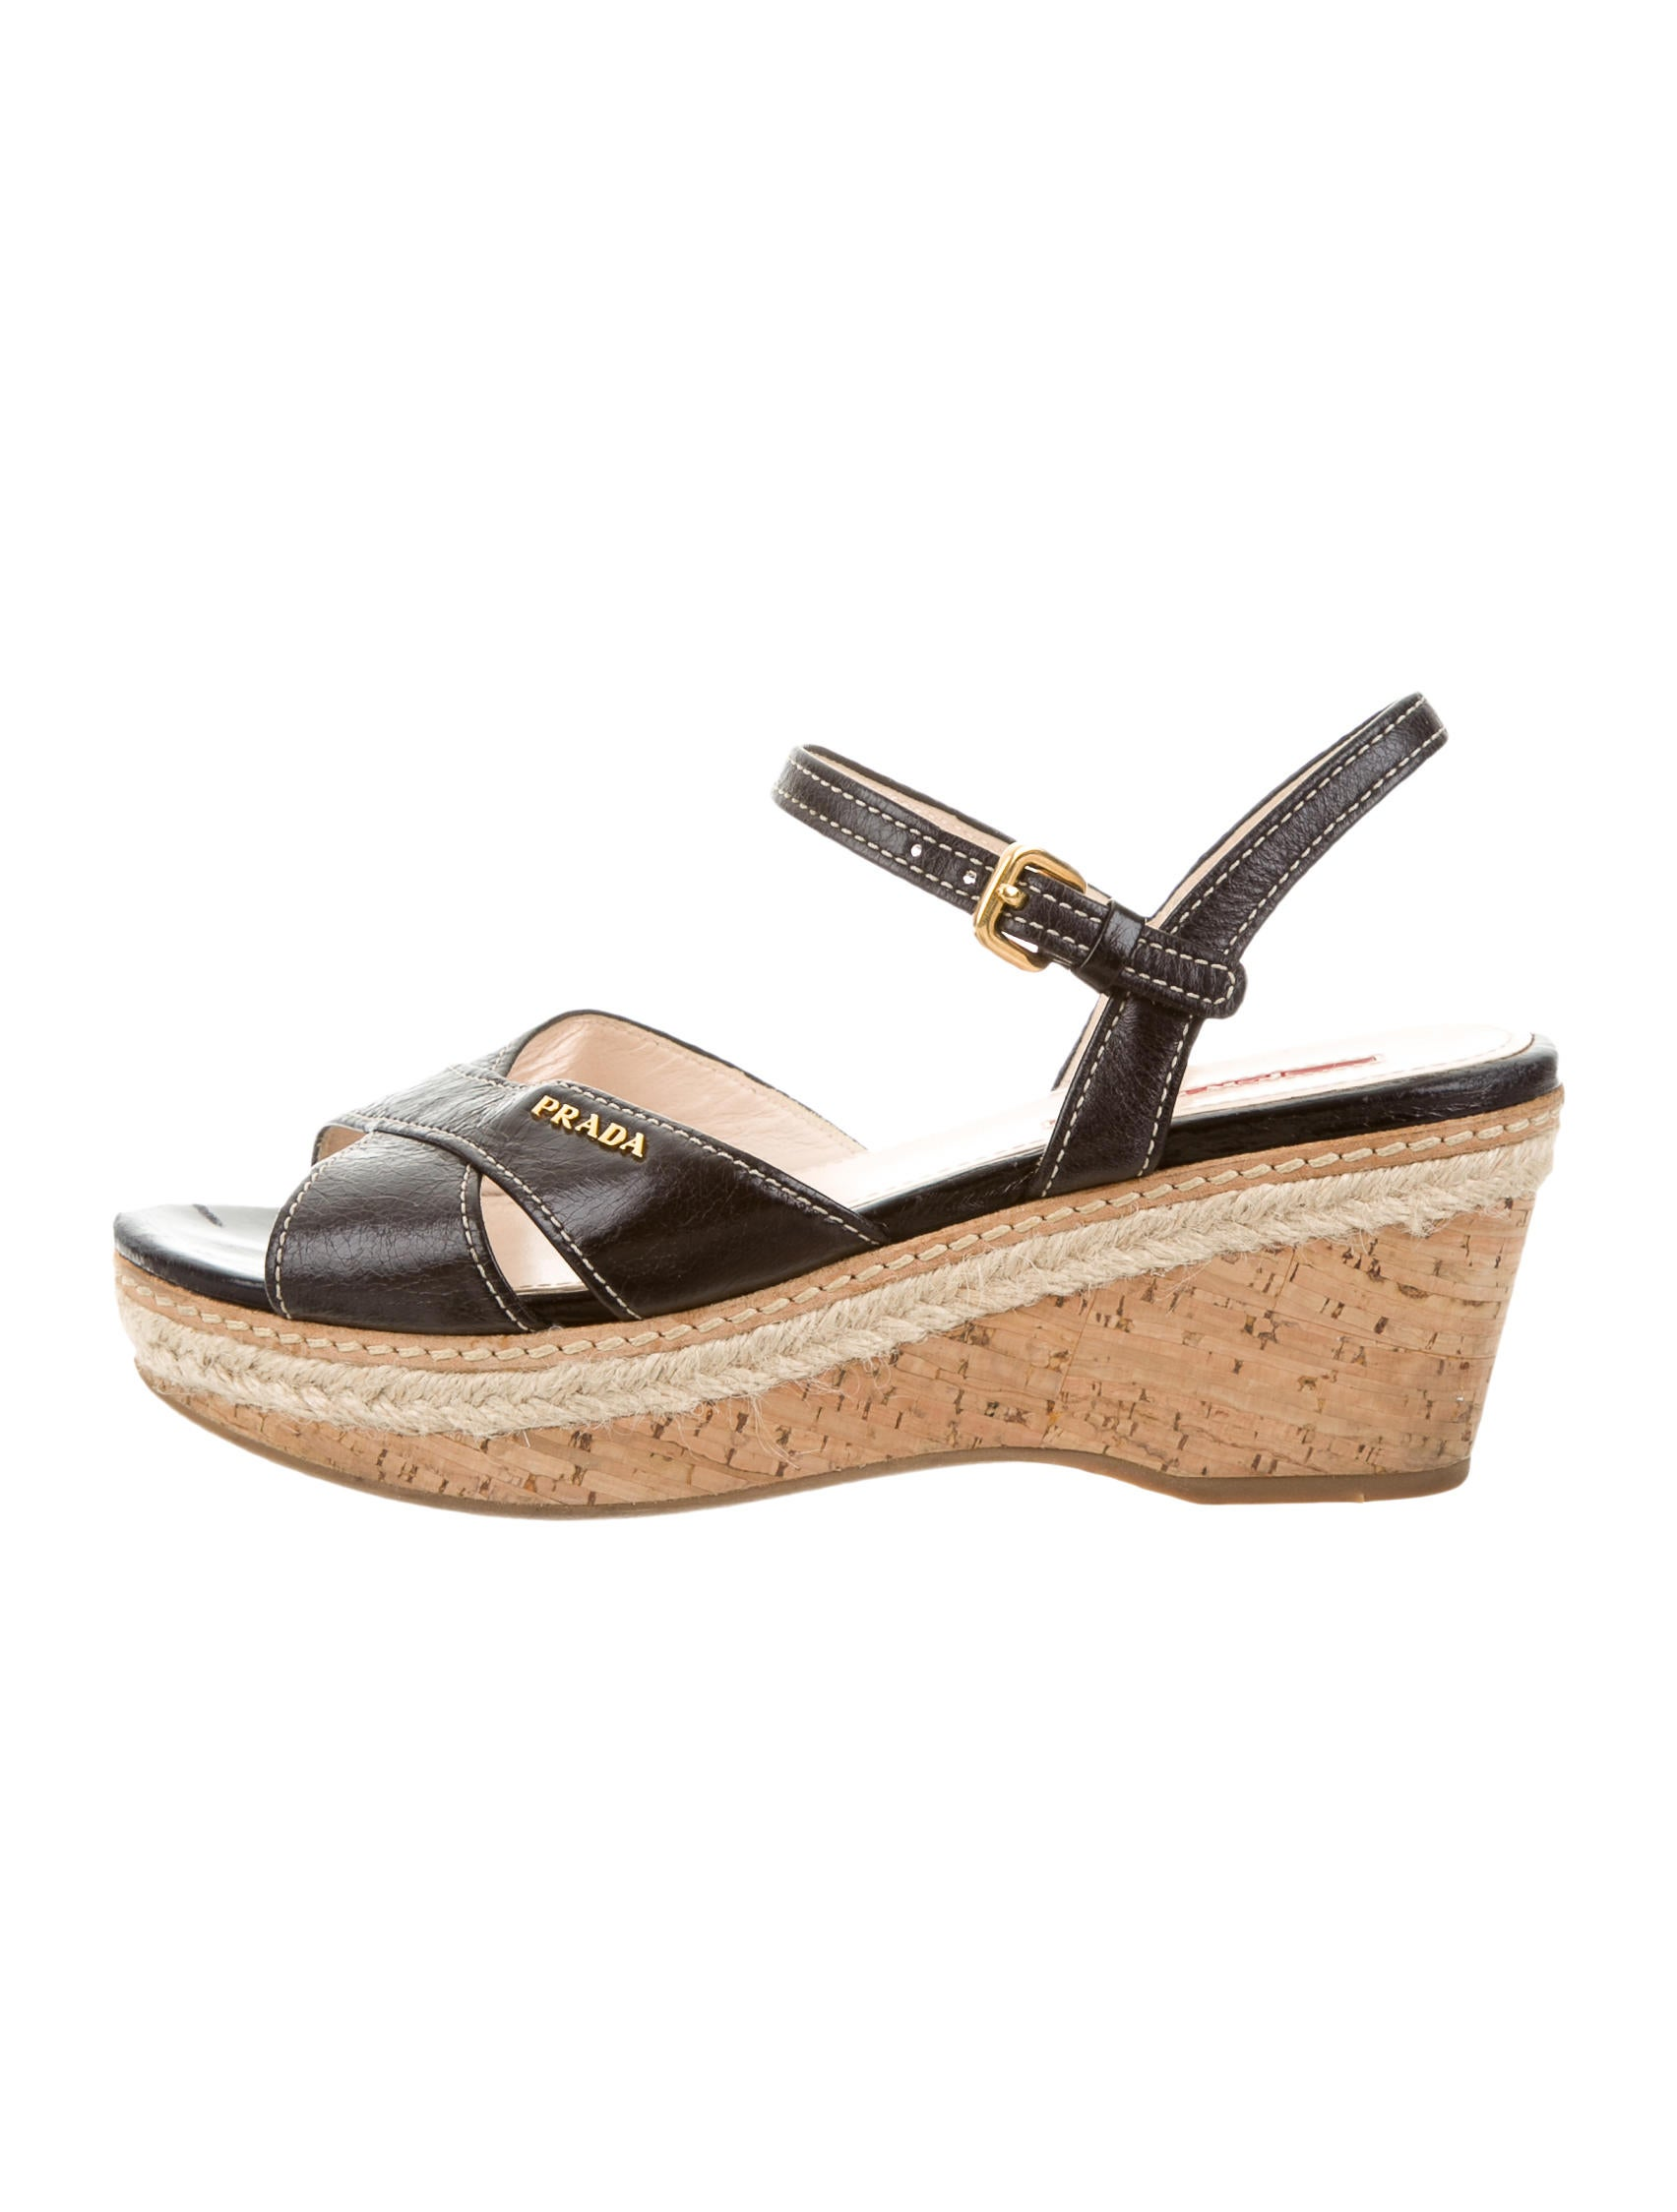 prada sport leather logo wedges shoes wpr34860 the